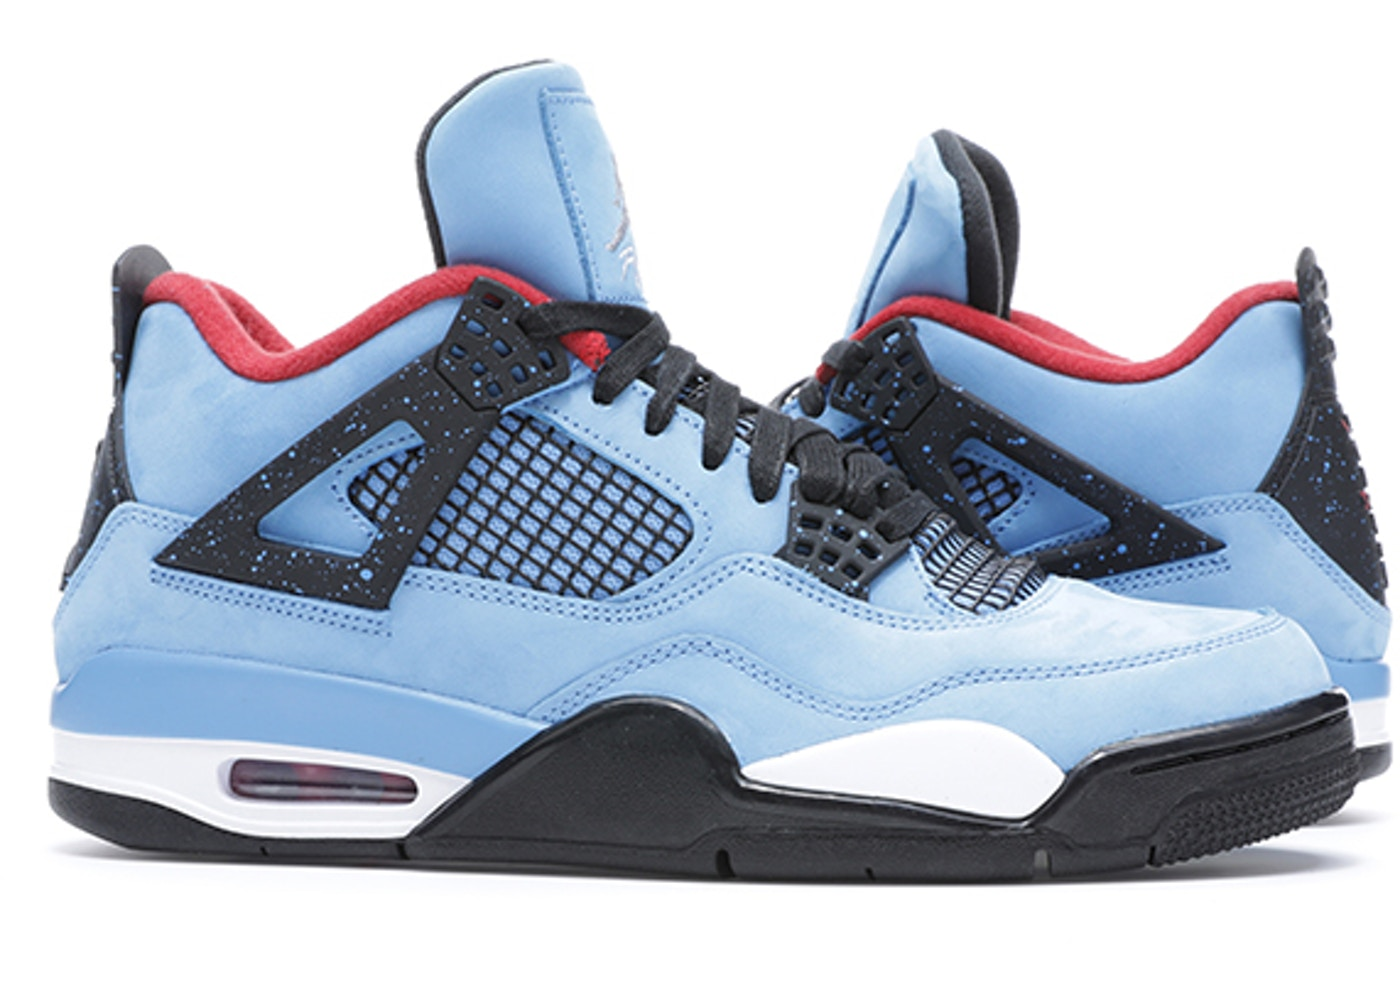 709ea7f3b1cd Jordan 4 Retro Travis Scott Cactus Jack - 308497-406